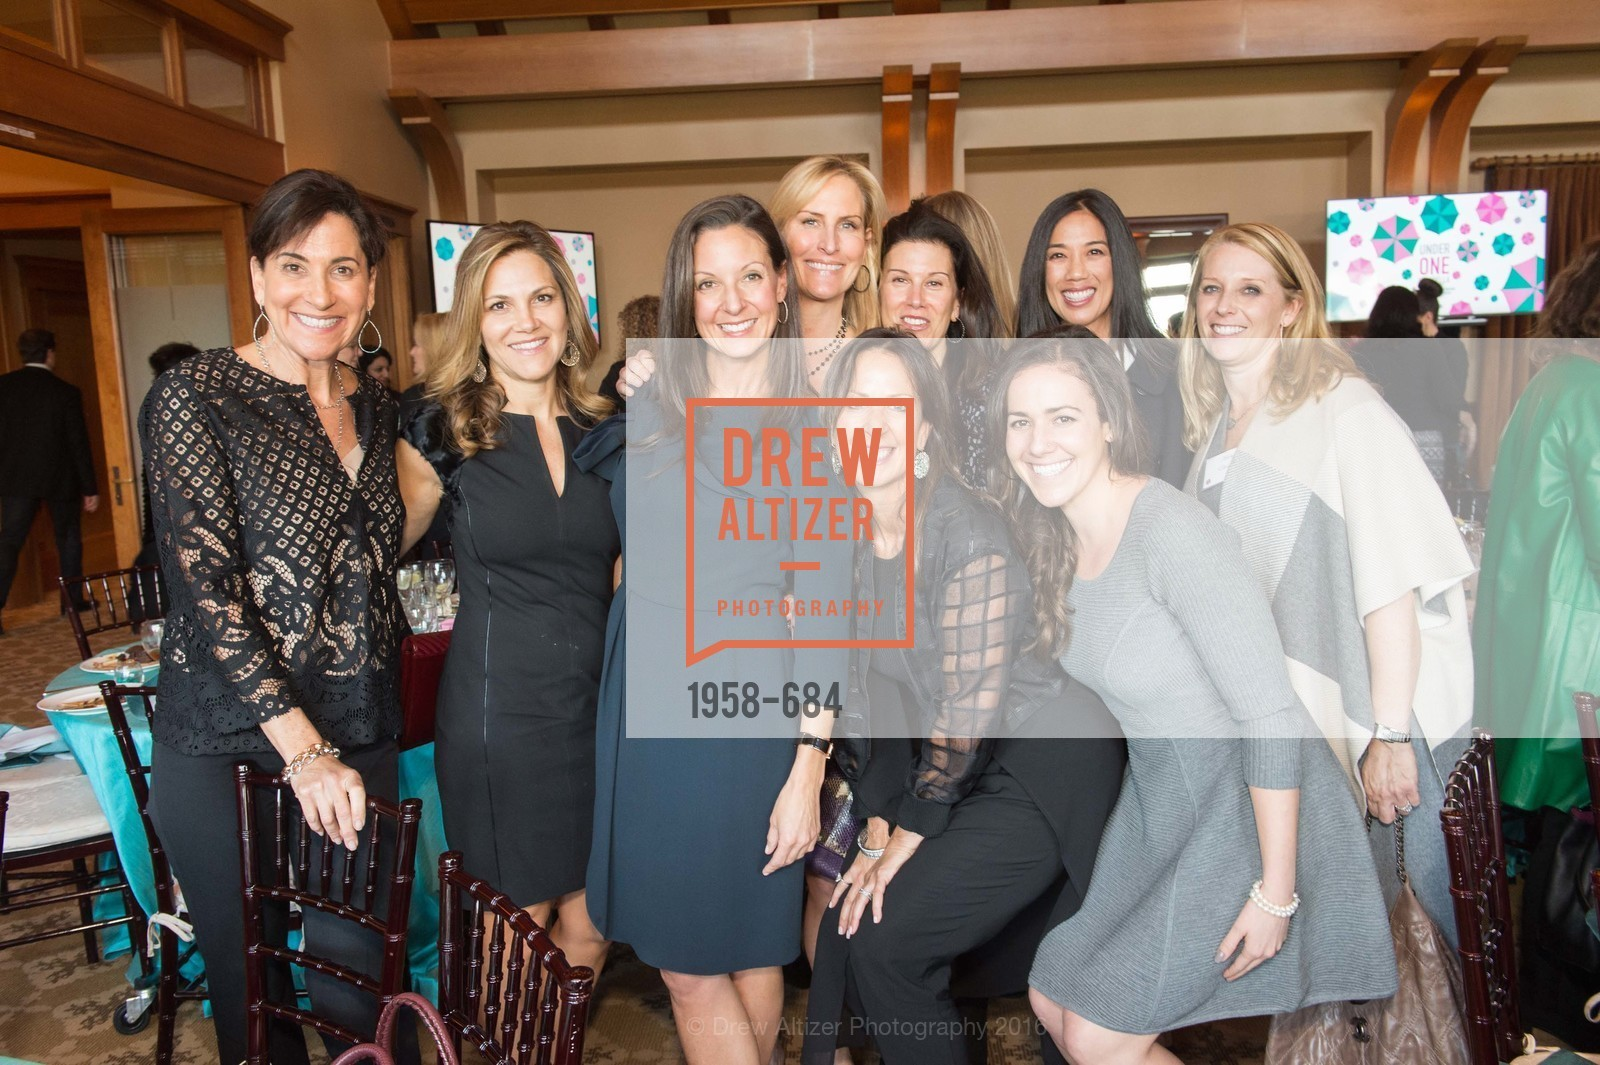 Linda MacDonald, Lisa Moss, Sarah Jones, Jessica Weil, Judy Zafran, Danielle Rivera, Under One Umbrella, Sharon Heights Golf and Country Club, January 13th, 2016,Drew Altizer, Drew Altizer Photography, full-service agency, private events, San Francisco photographer, photographer california